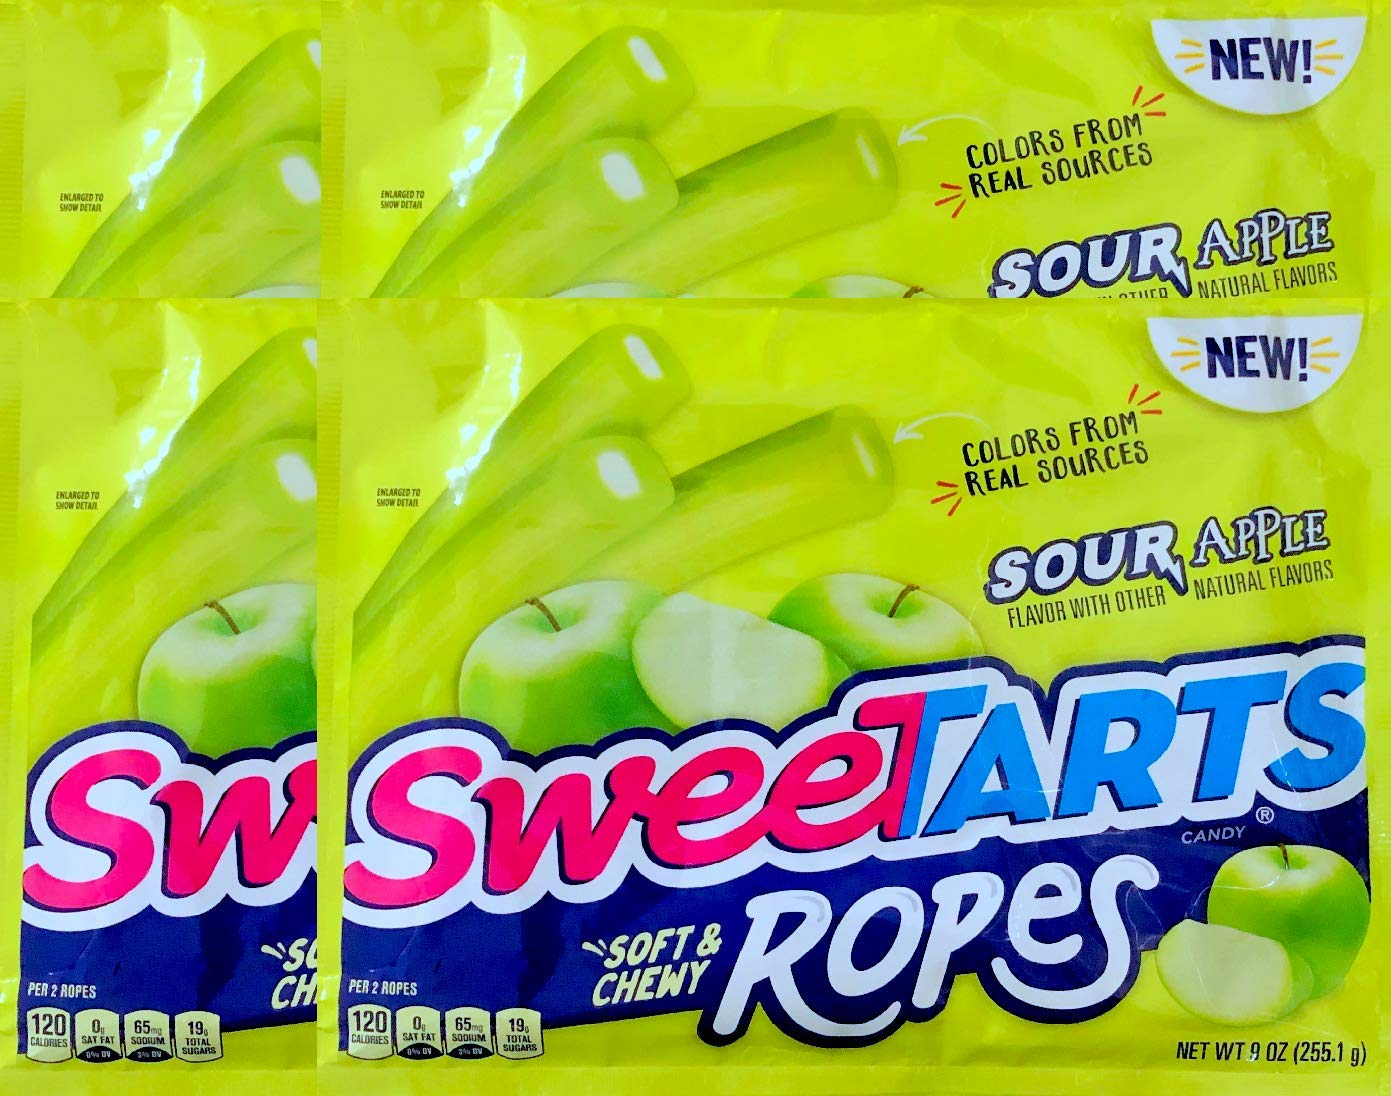 NEW Sweetarts Sour Apple Soft & Chewy Ropes Net Wt 9oz (1)